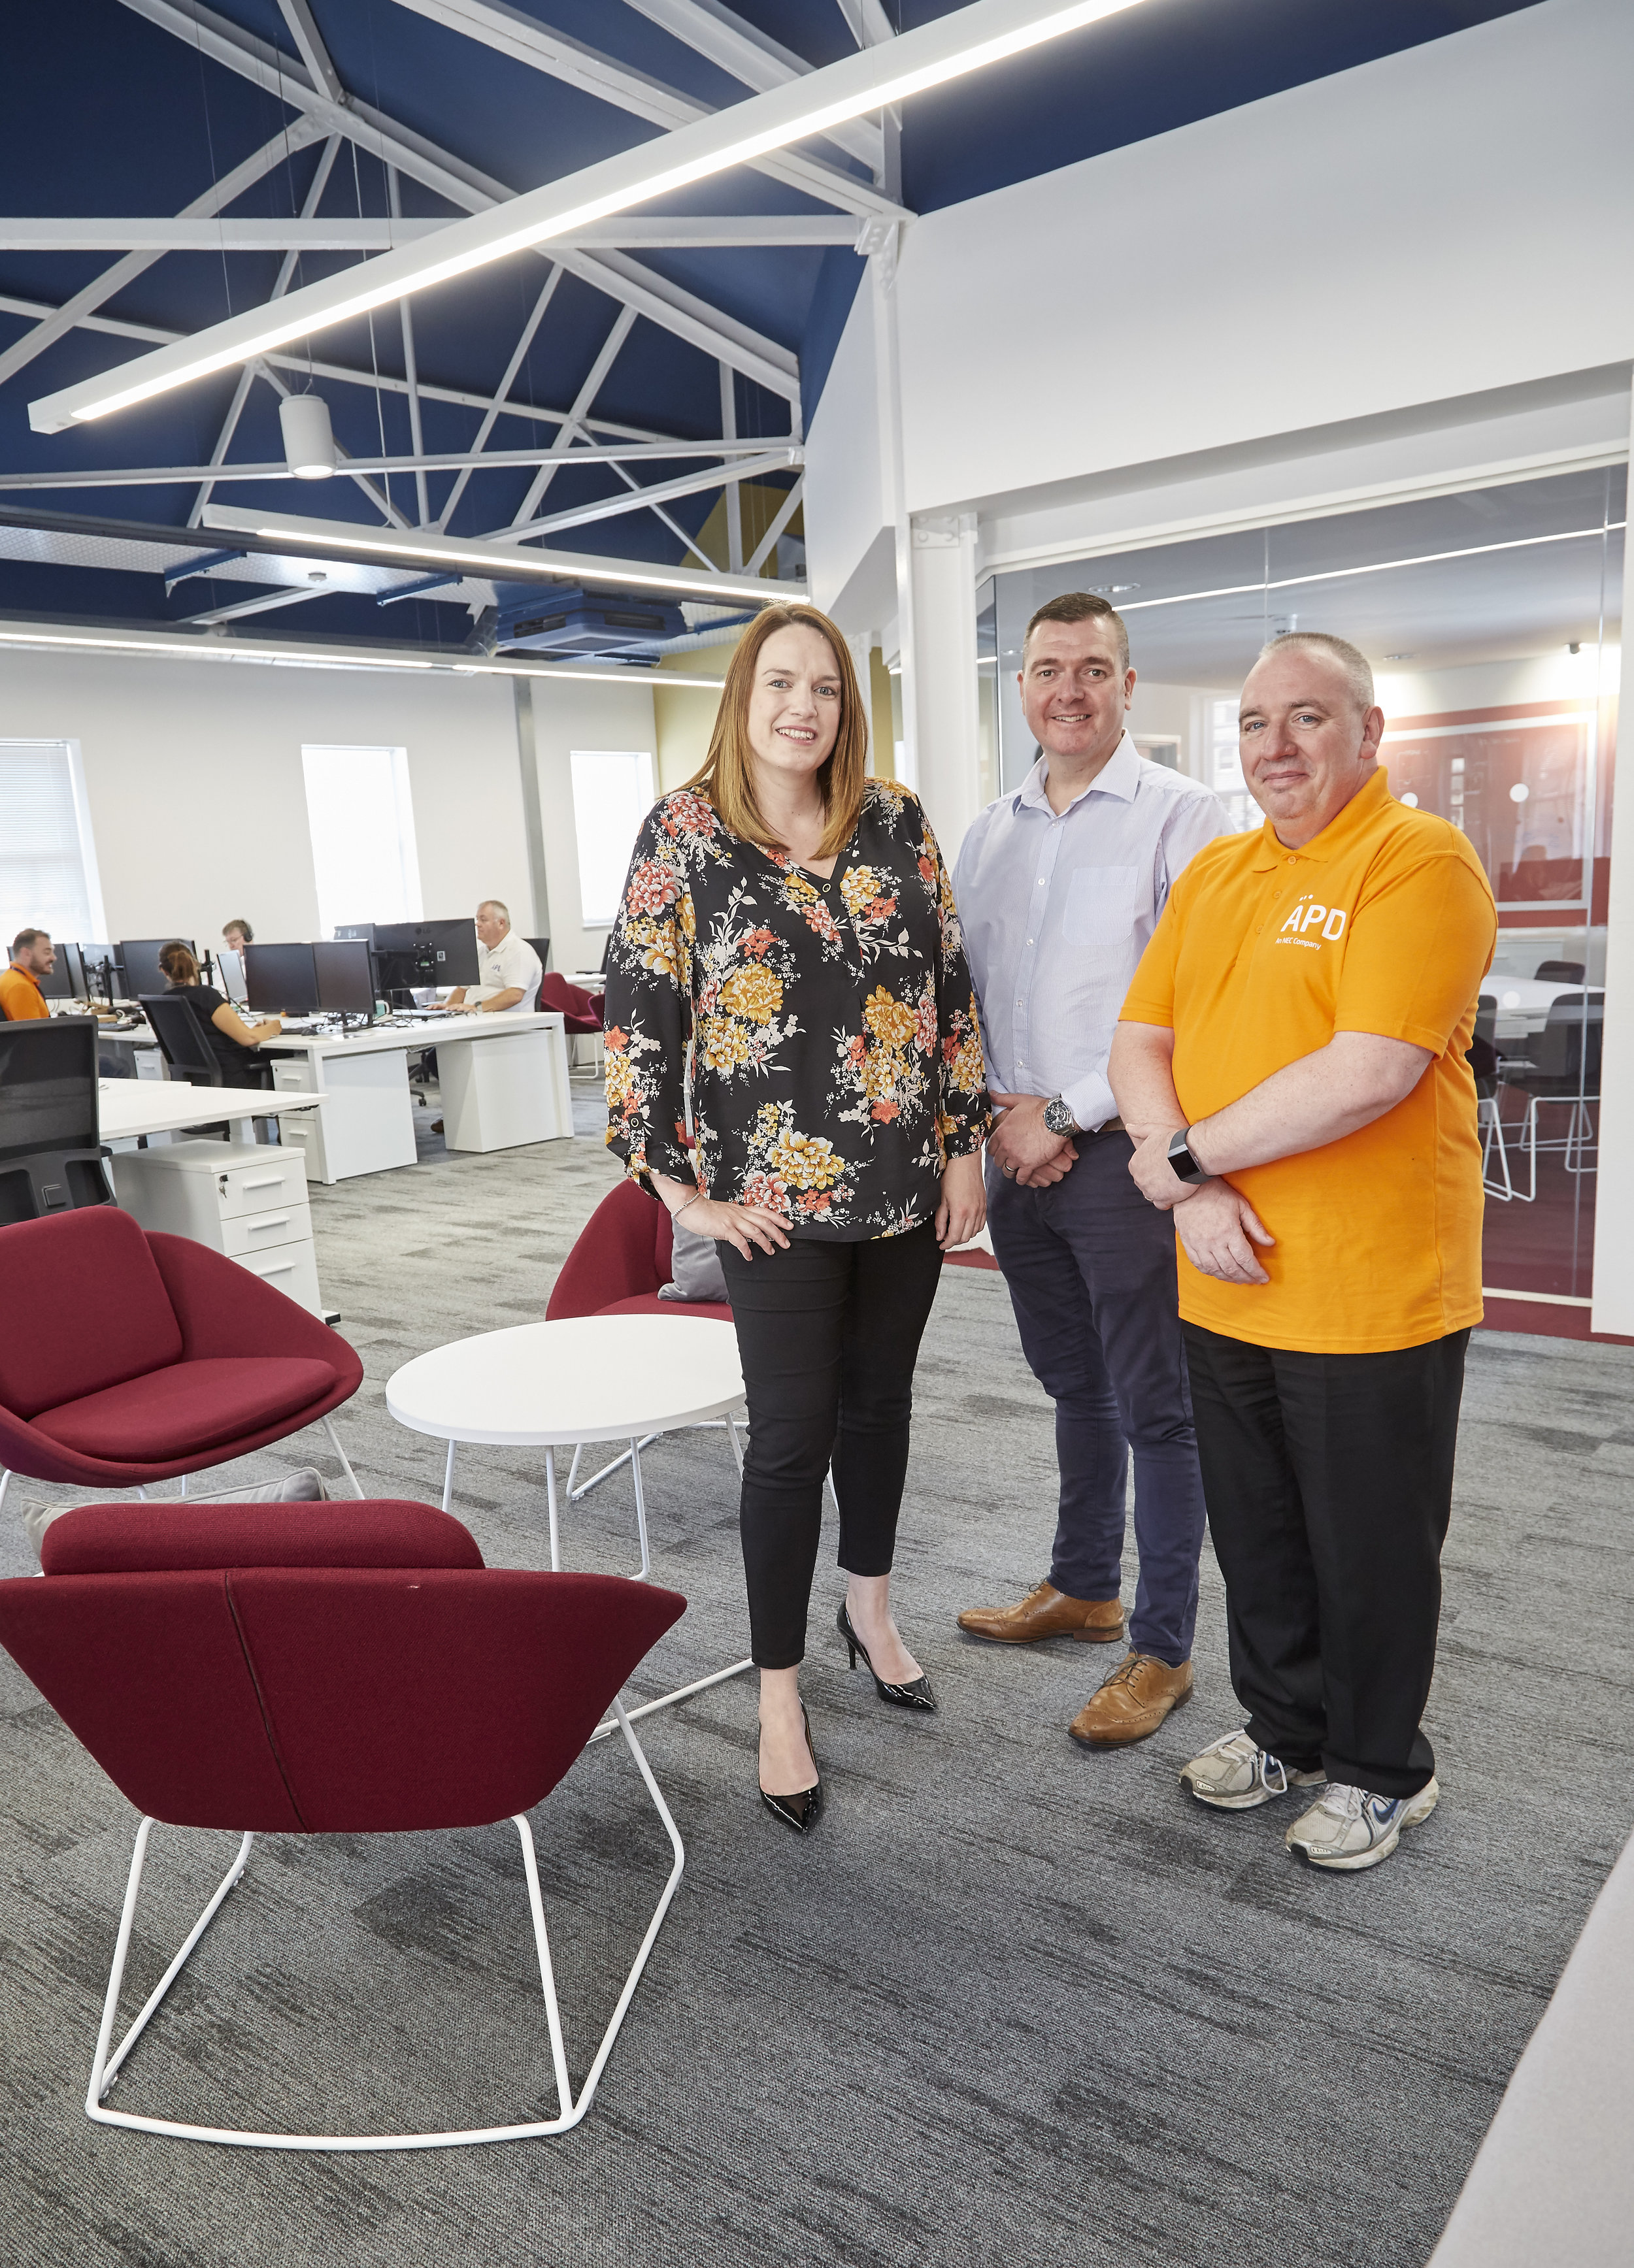 Commercial Director Rhiannon Beeson, Support Team Leader Dave Campbell, centre, and Support Engineer Mark Grice in APD Communications' inspiring new offices in Hull's Old Town.